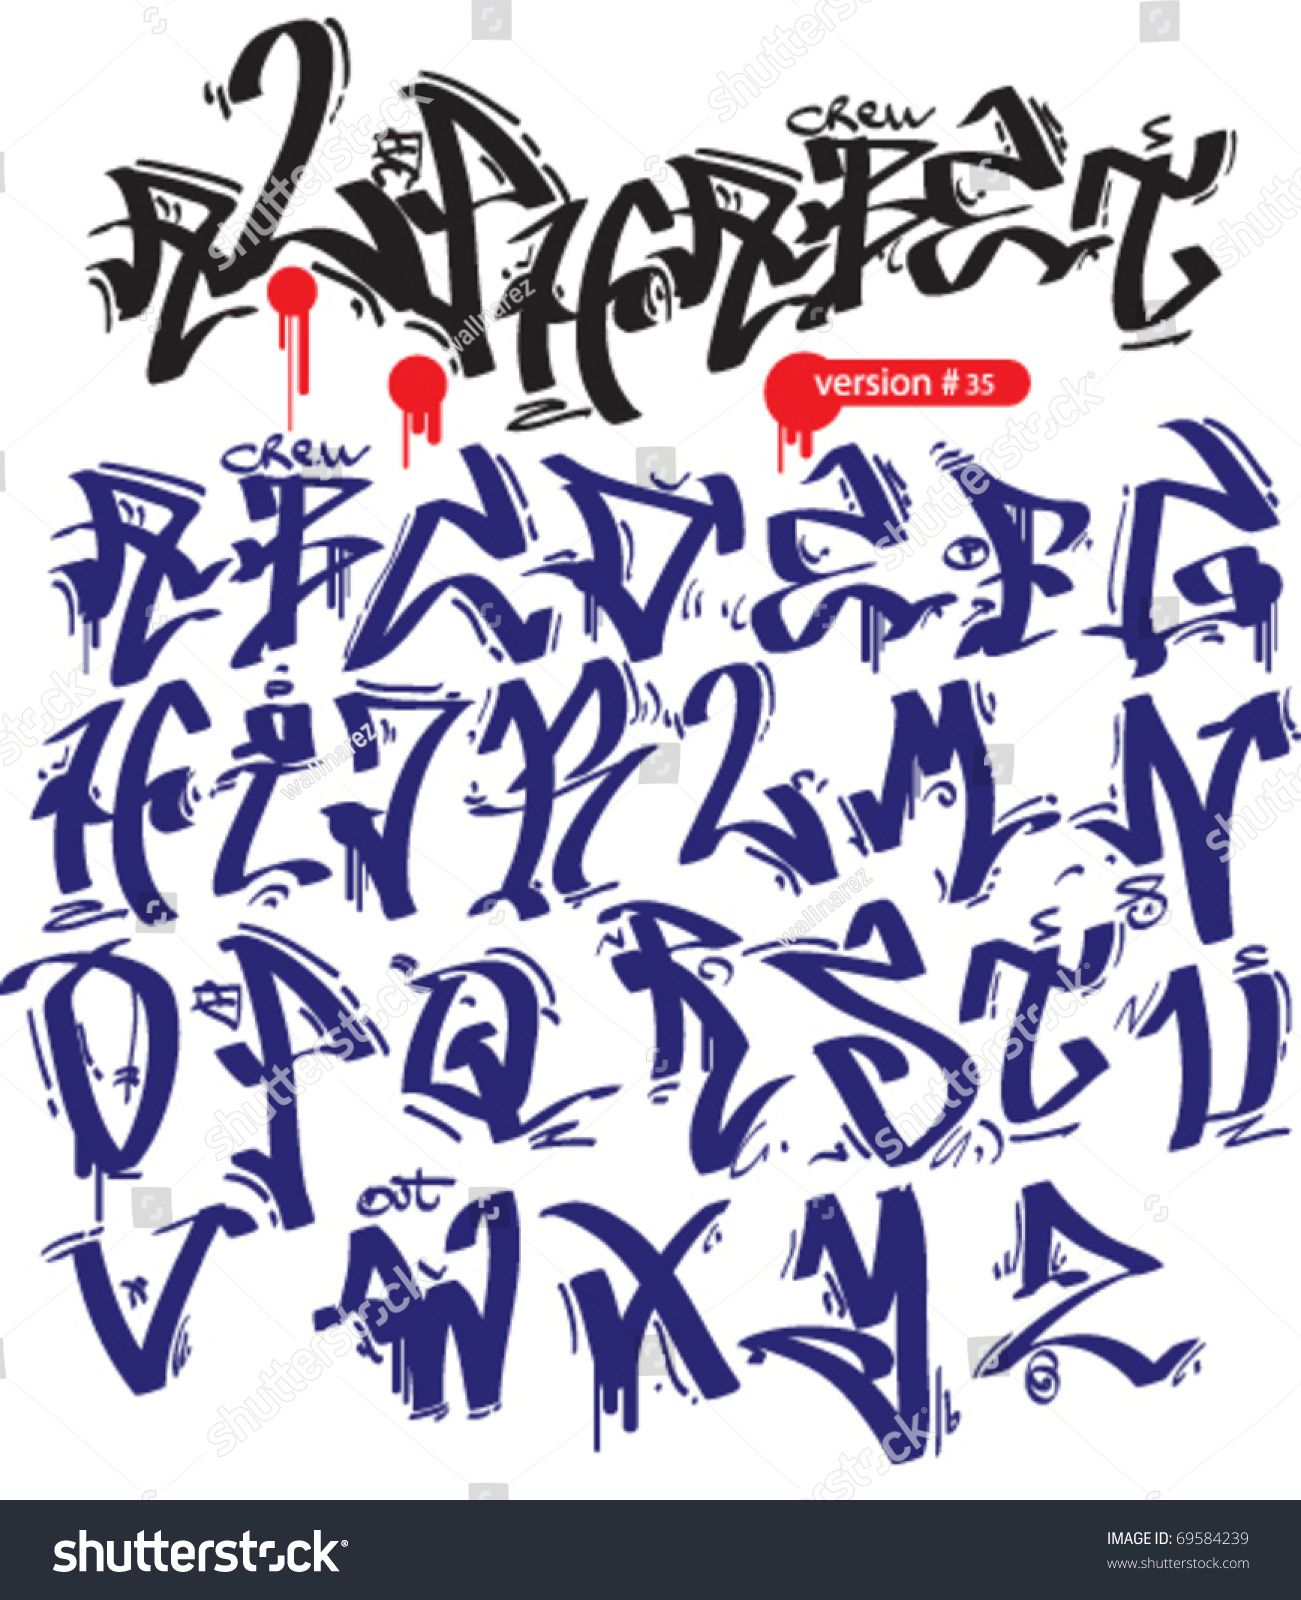 Graffiti Tattoo Lettering Generator: Graffiti Vector Alphabet Hip-hop Urban Slyle